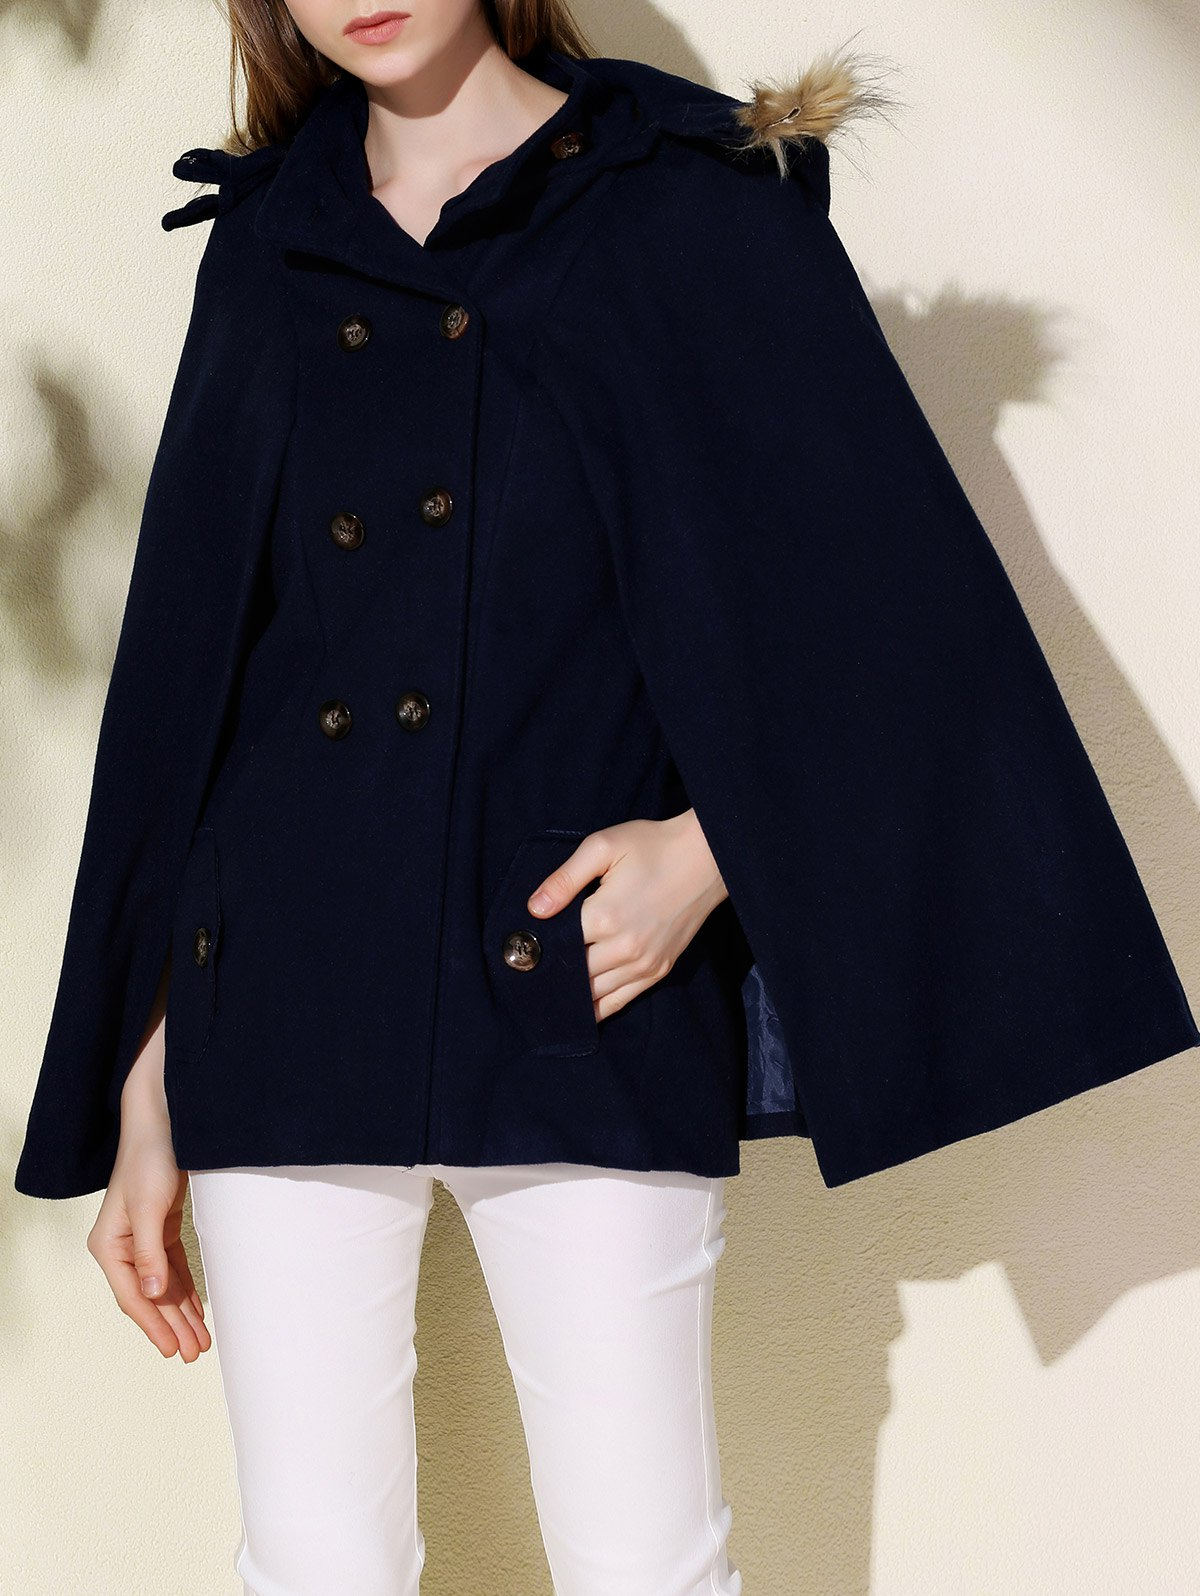 Affordable Sweet Hooded Batwing Sleeve Wool Coat For Women